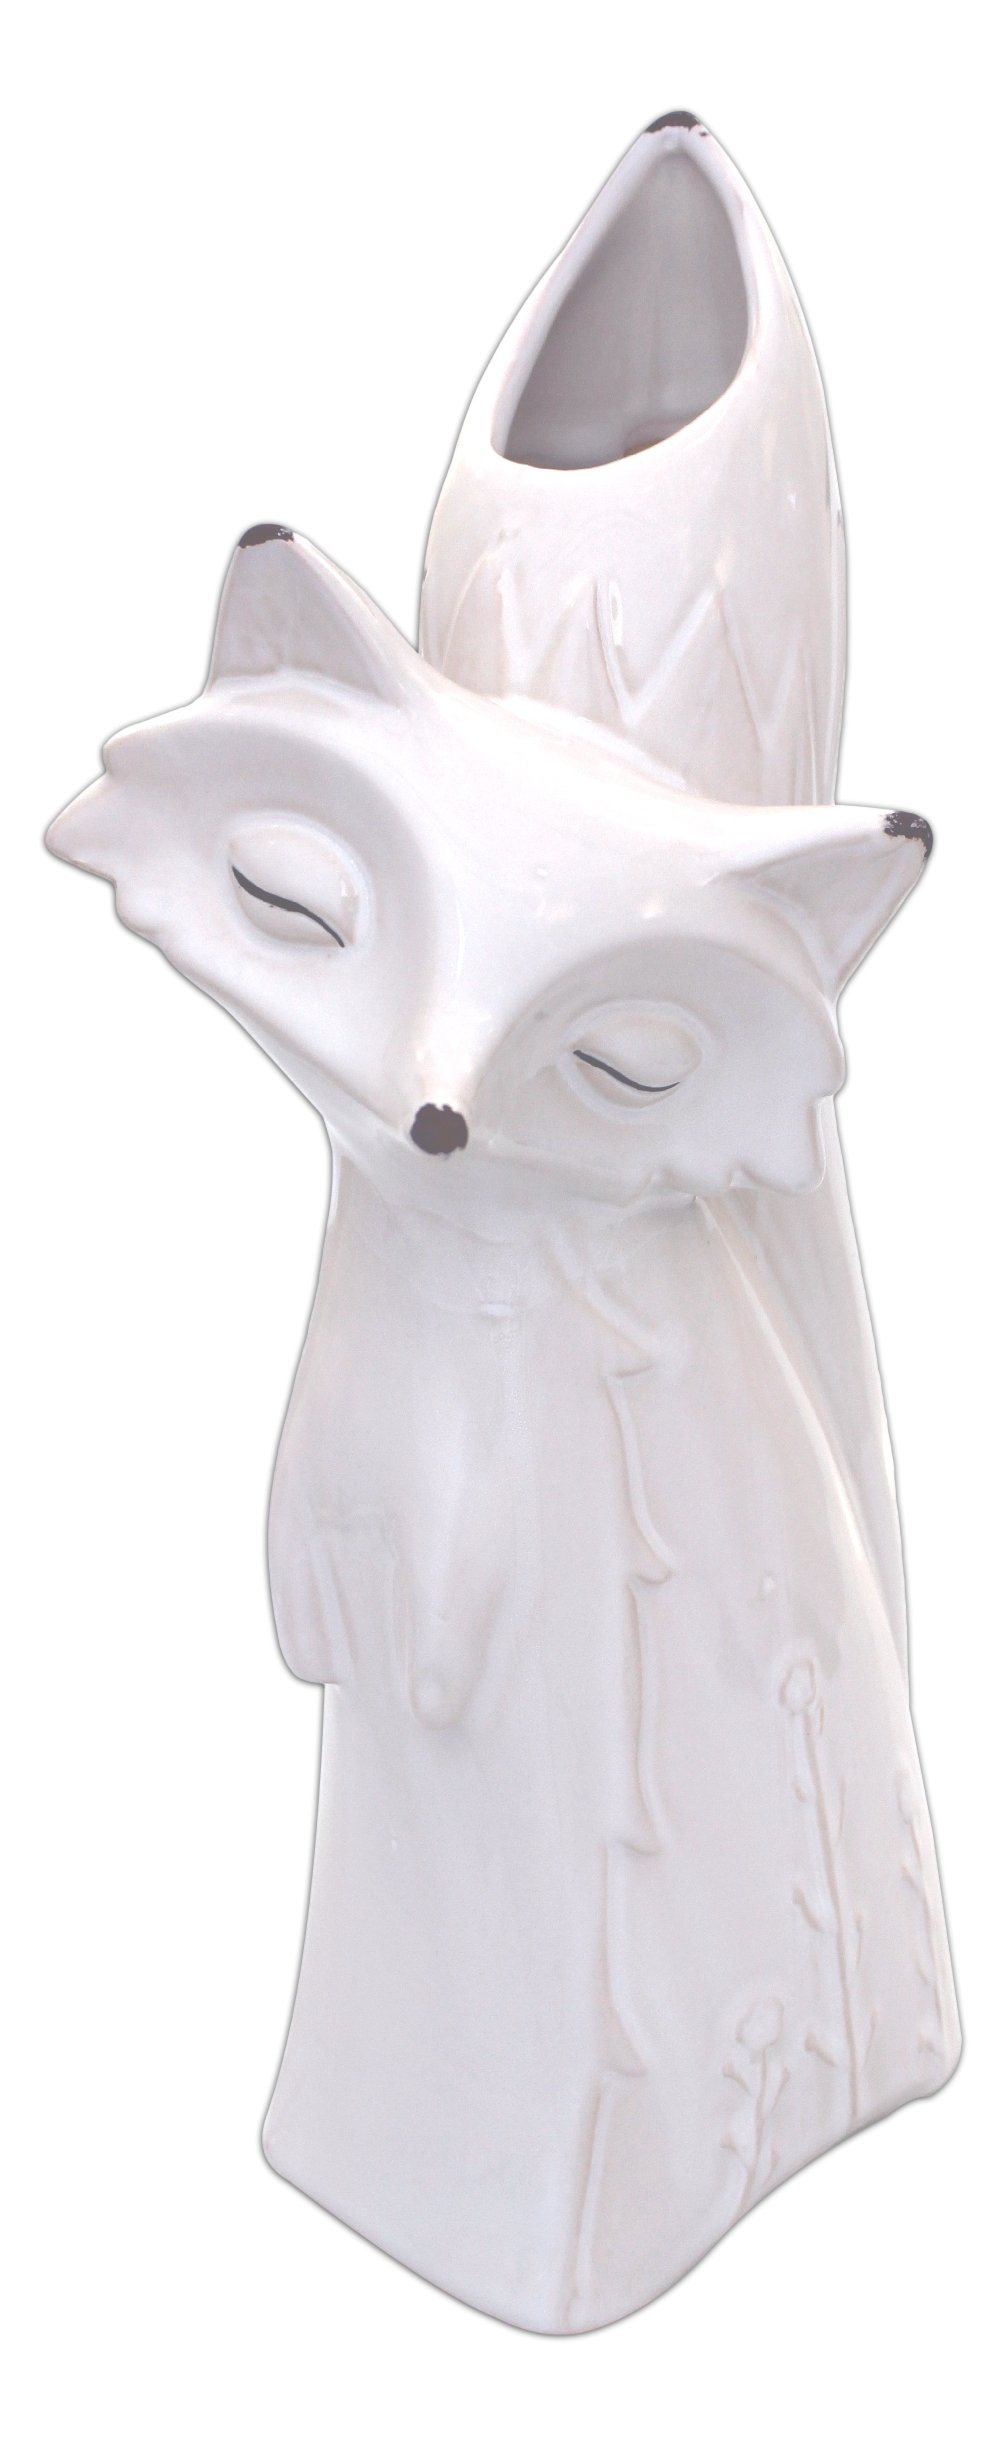 MayRich 14'' Tall White Crackled Porcelain Decorative Fox Vase